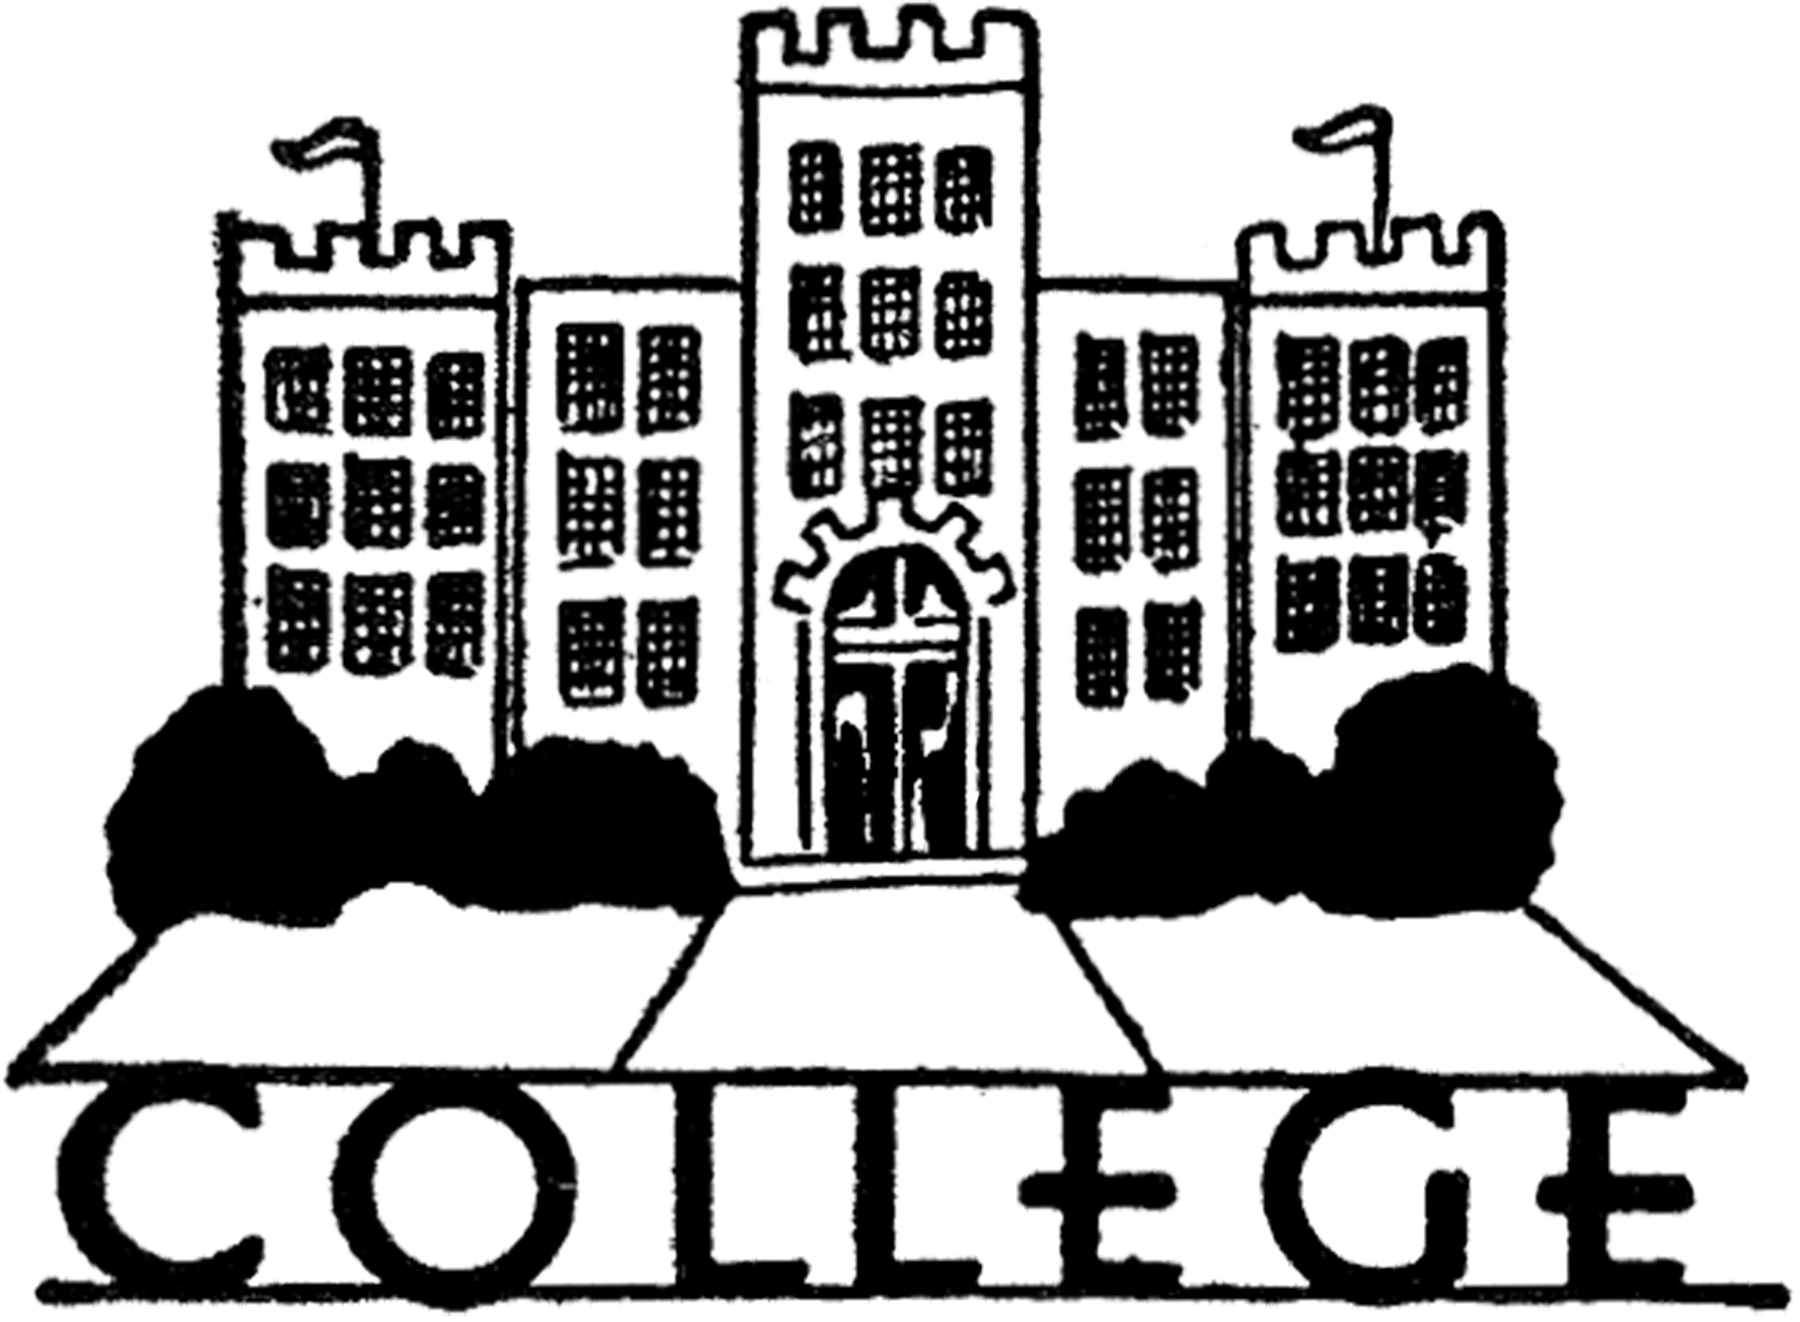 College clipart. Free panda images collegeclipart